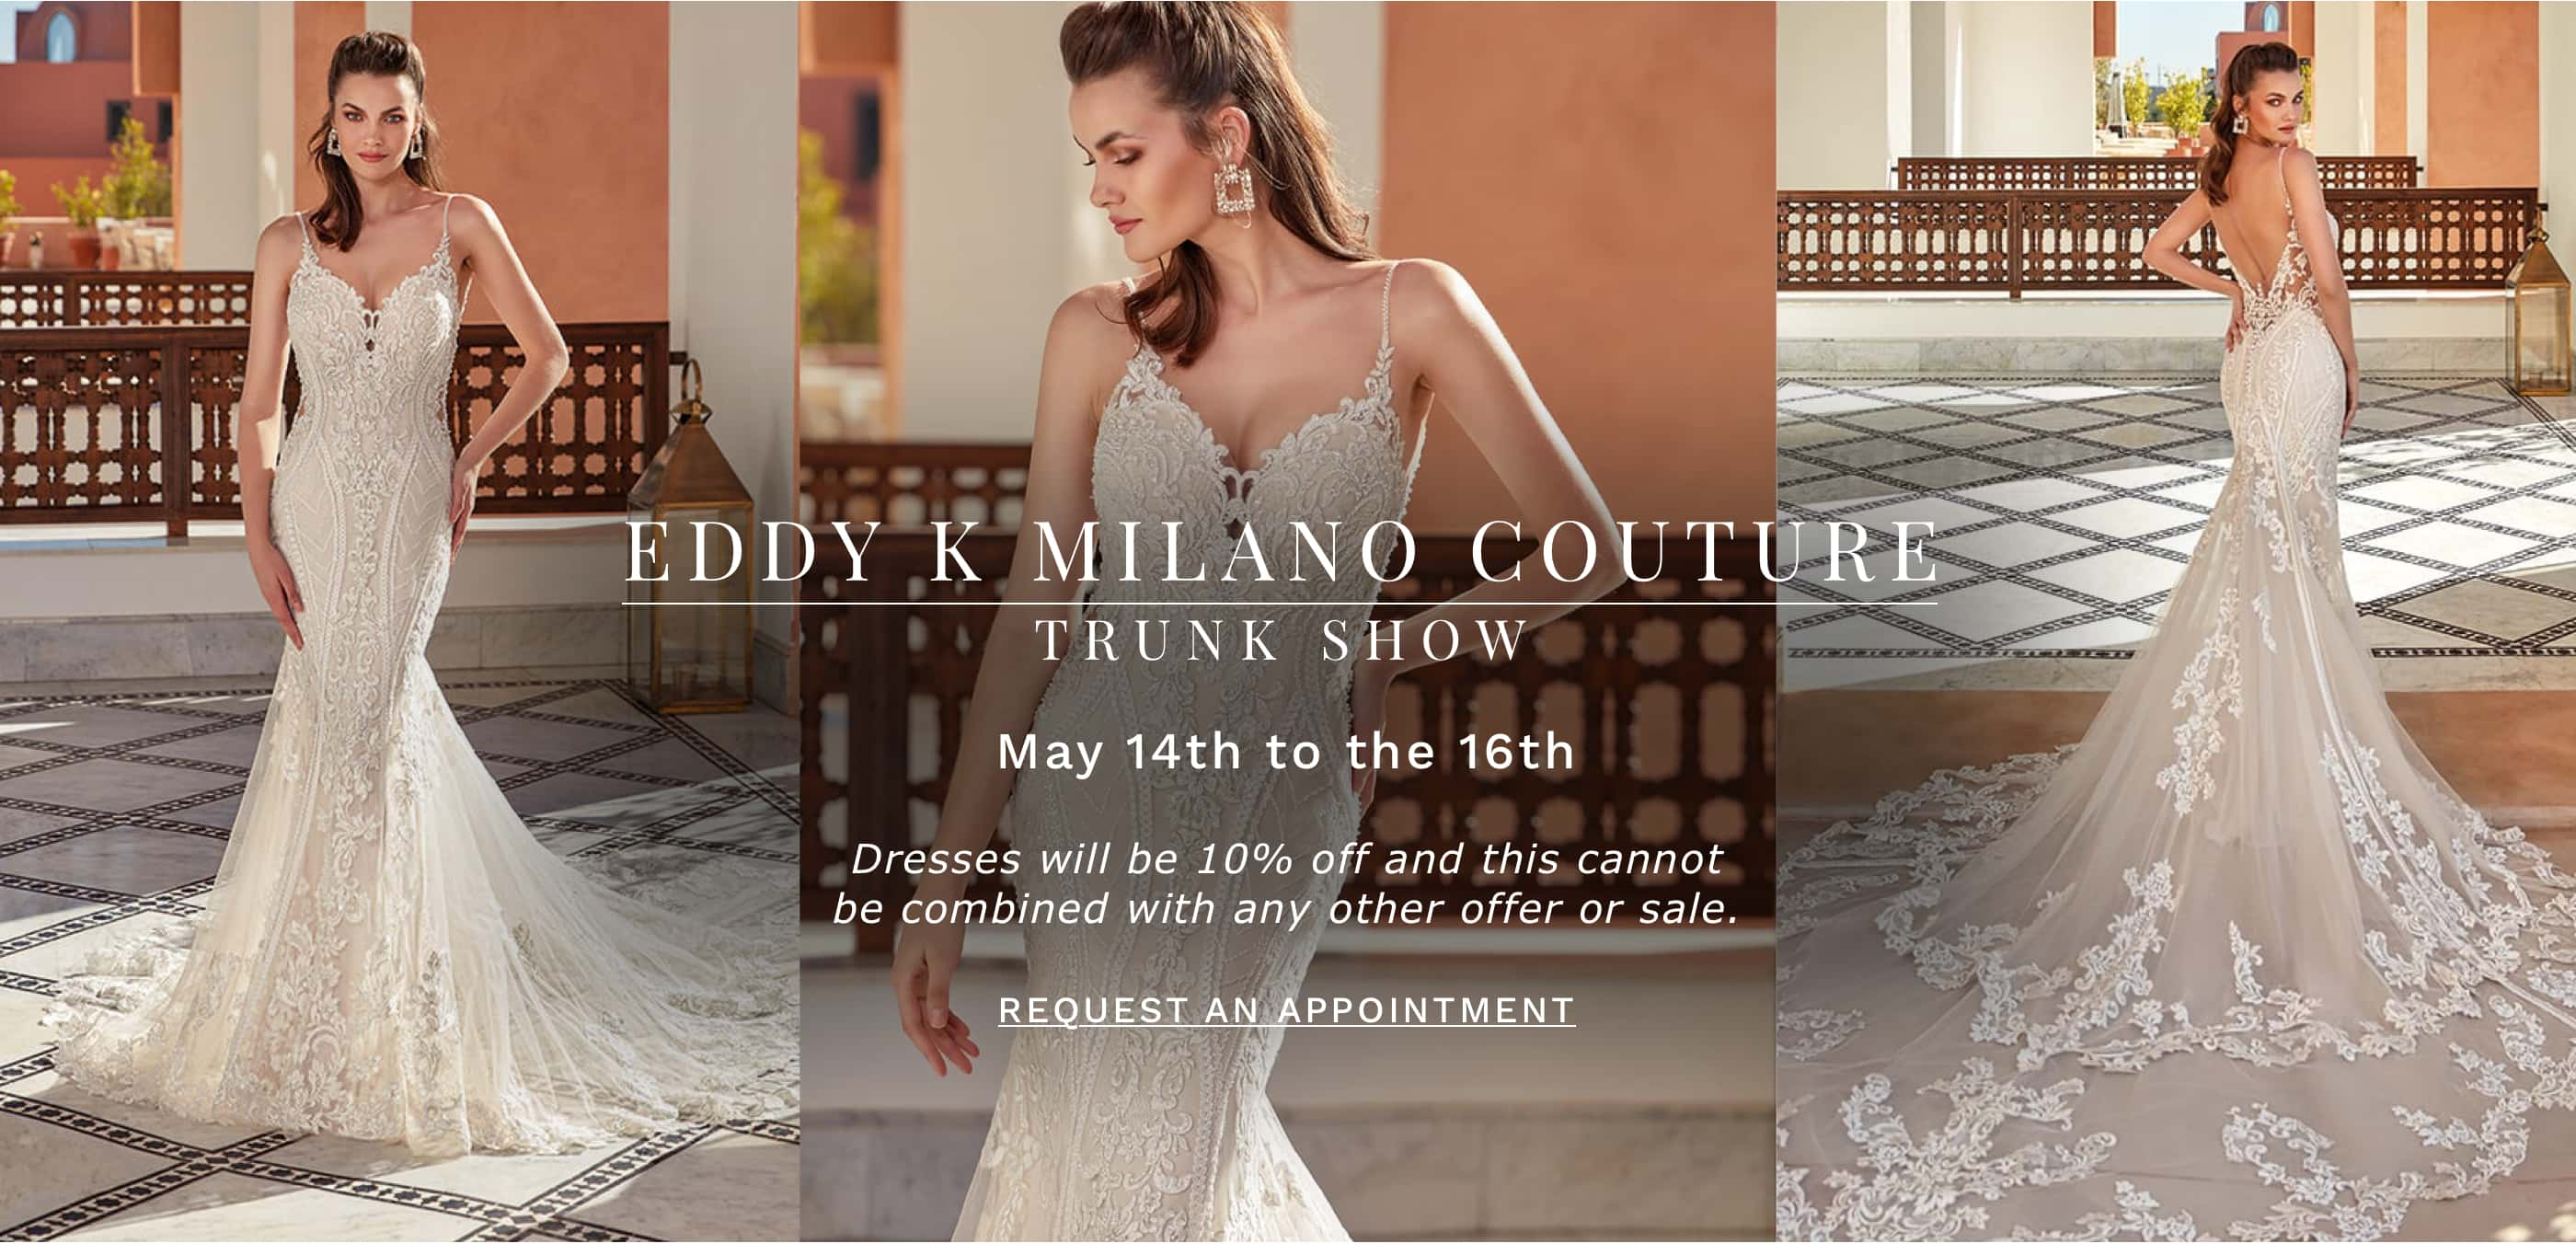 Eddy K Milano Couture trunk show at Dublin Bridal. Find your dream wedding gown. Desktop image.